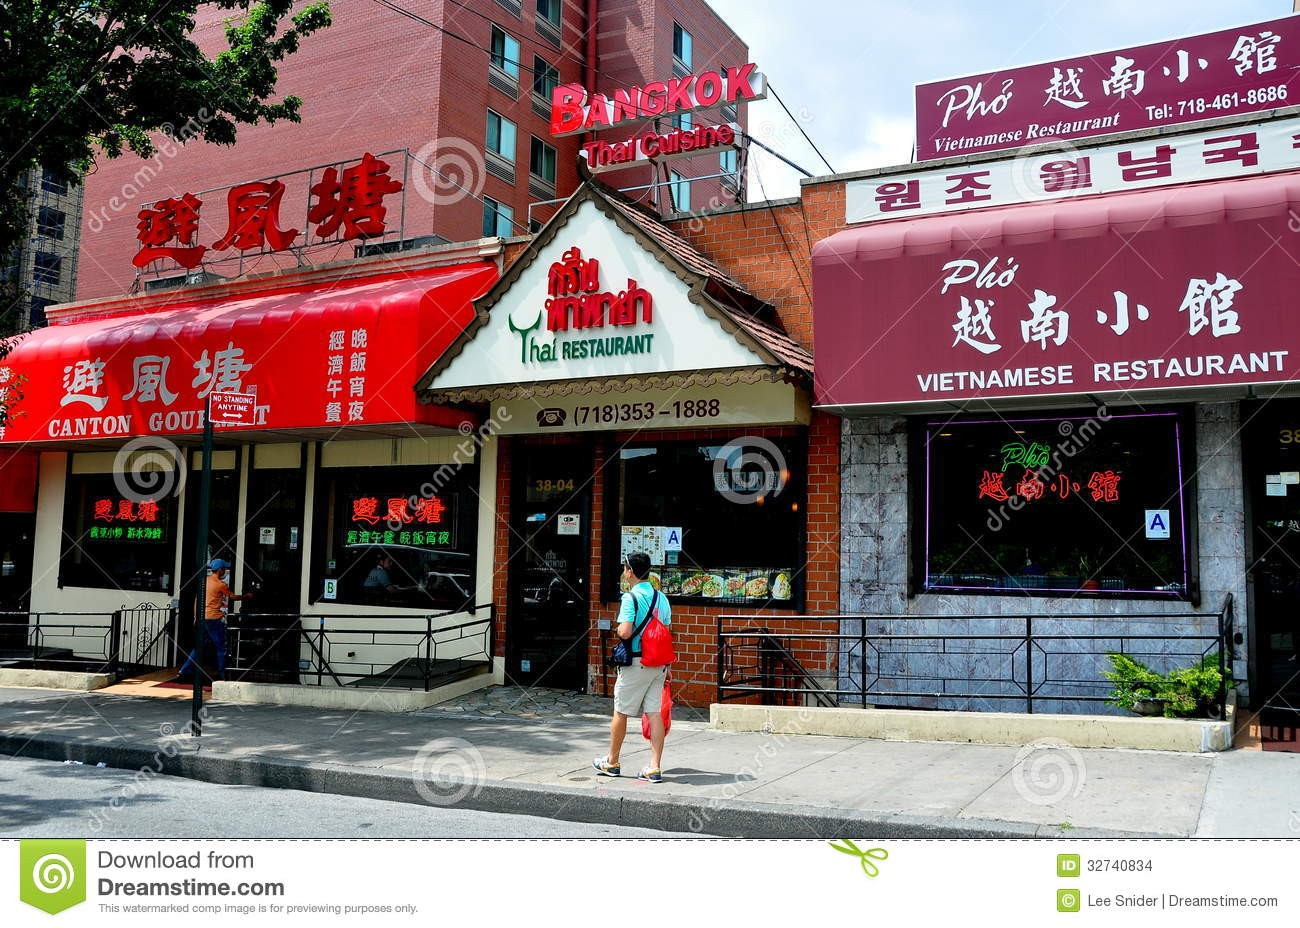 Arts and crafts stores in flushing ny for 101 taiwanese cuisine flushing